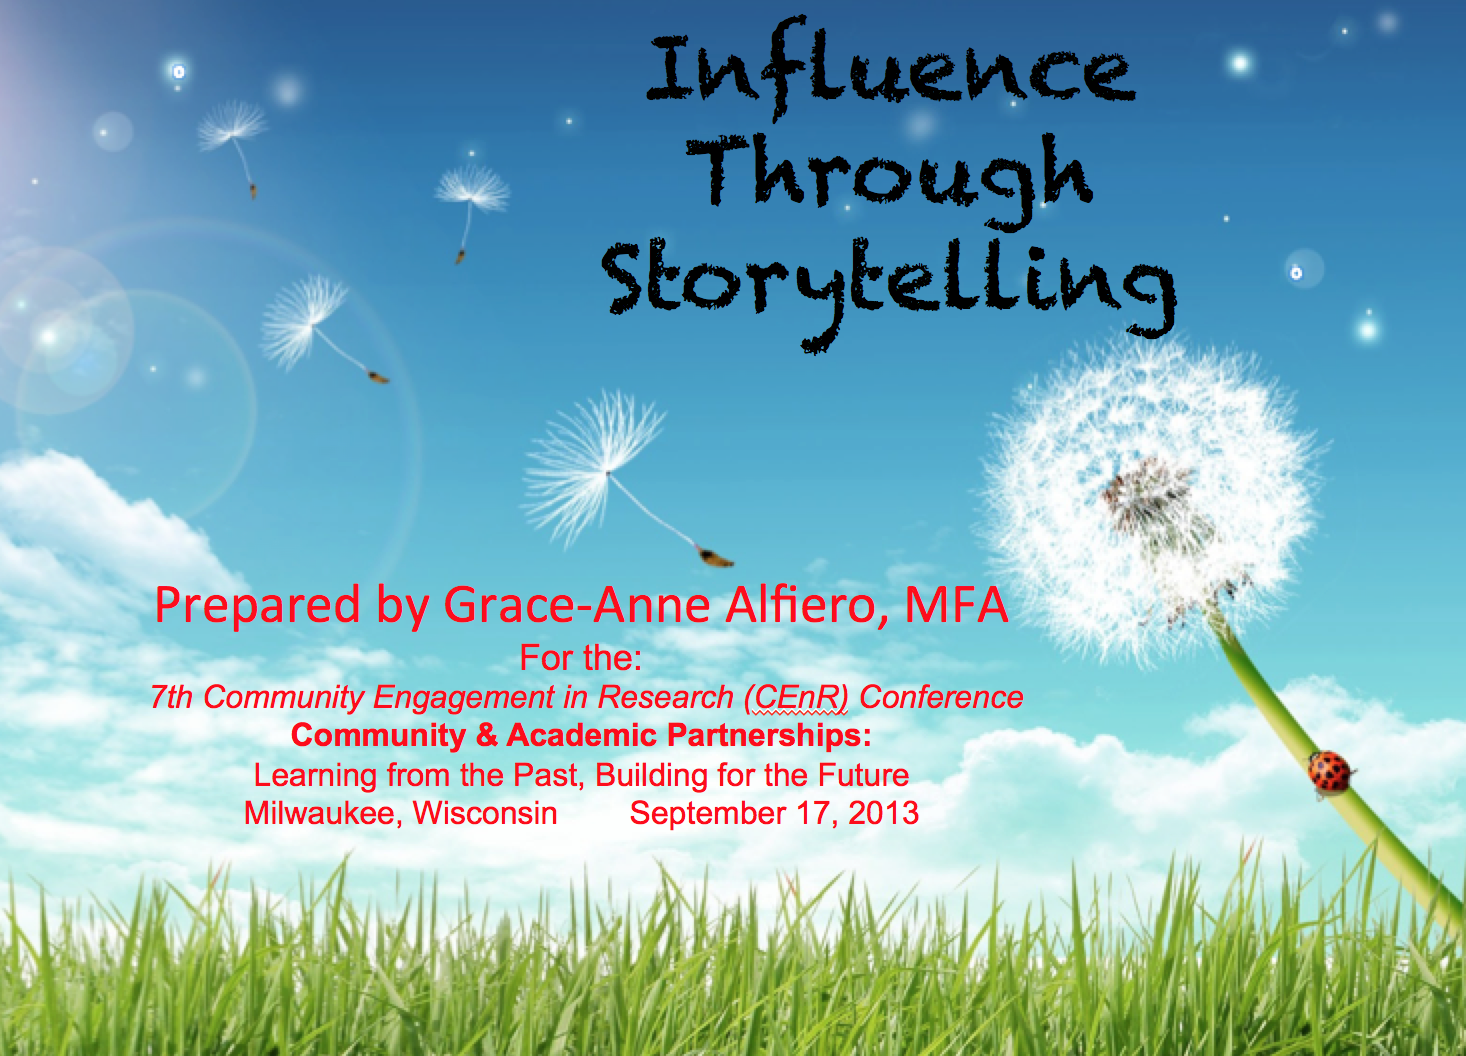 Influence Through Storytelling